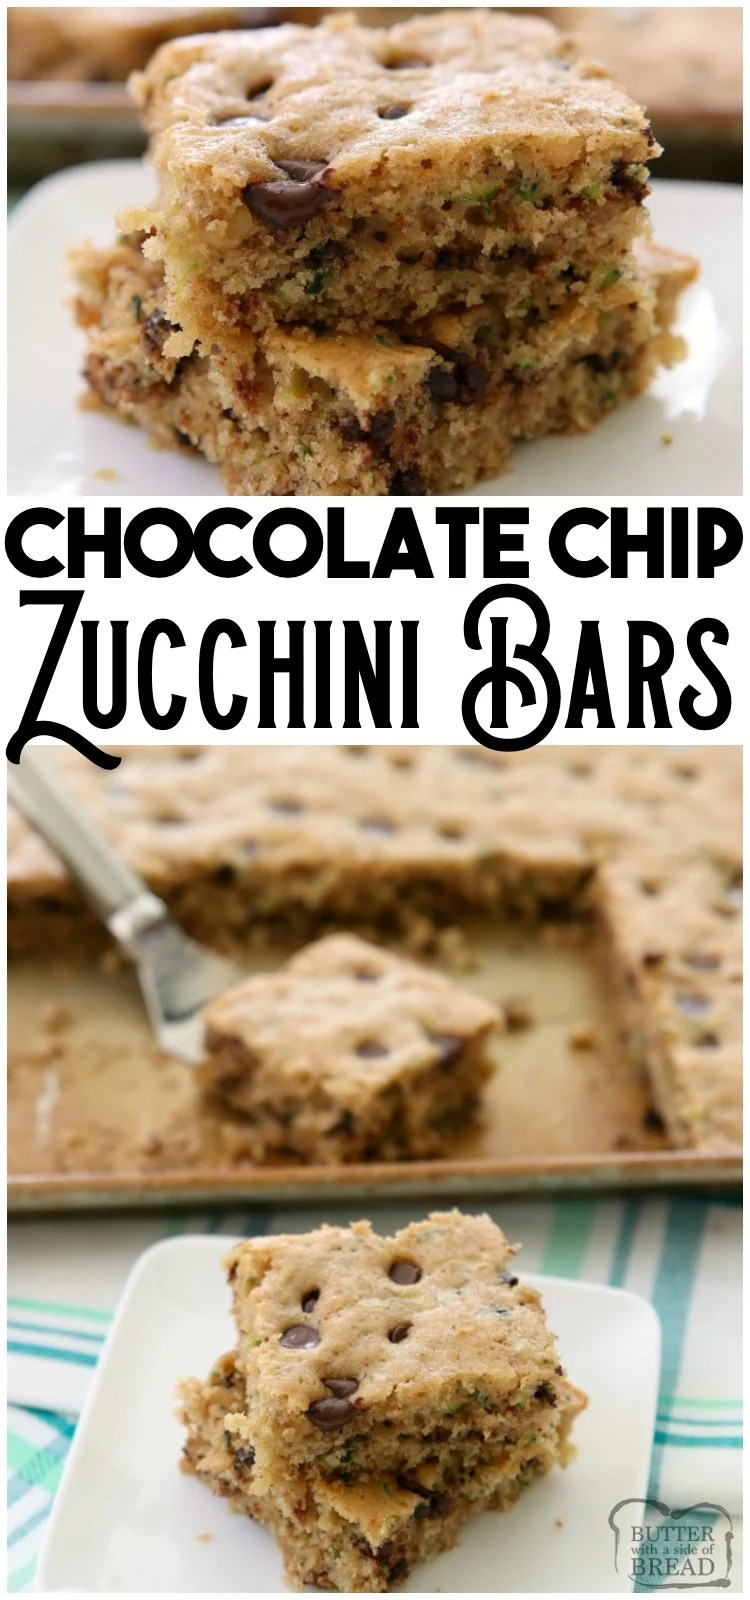 Chocolate Chip Zucchini Bars made with ripe zucchini and has all the zucchini bread flavors! One of my favorite easy zucchini recipes; these bars are a real crowd pleaser! #zucchini #quickbread #cake #baking #chocolatechip #recipe #snack from BUTTER WITH A SIDE OF BREAD